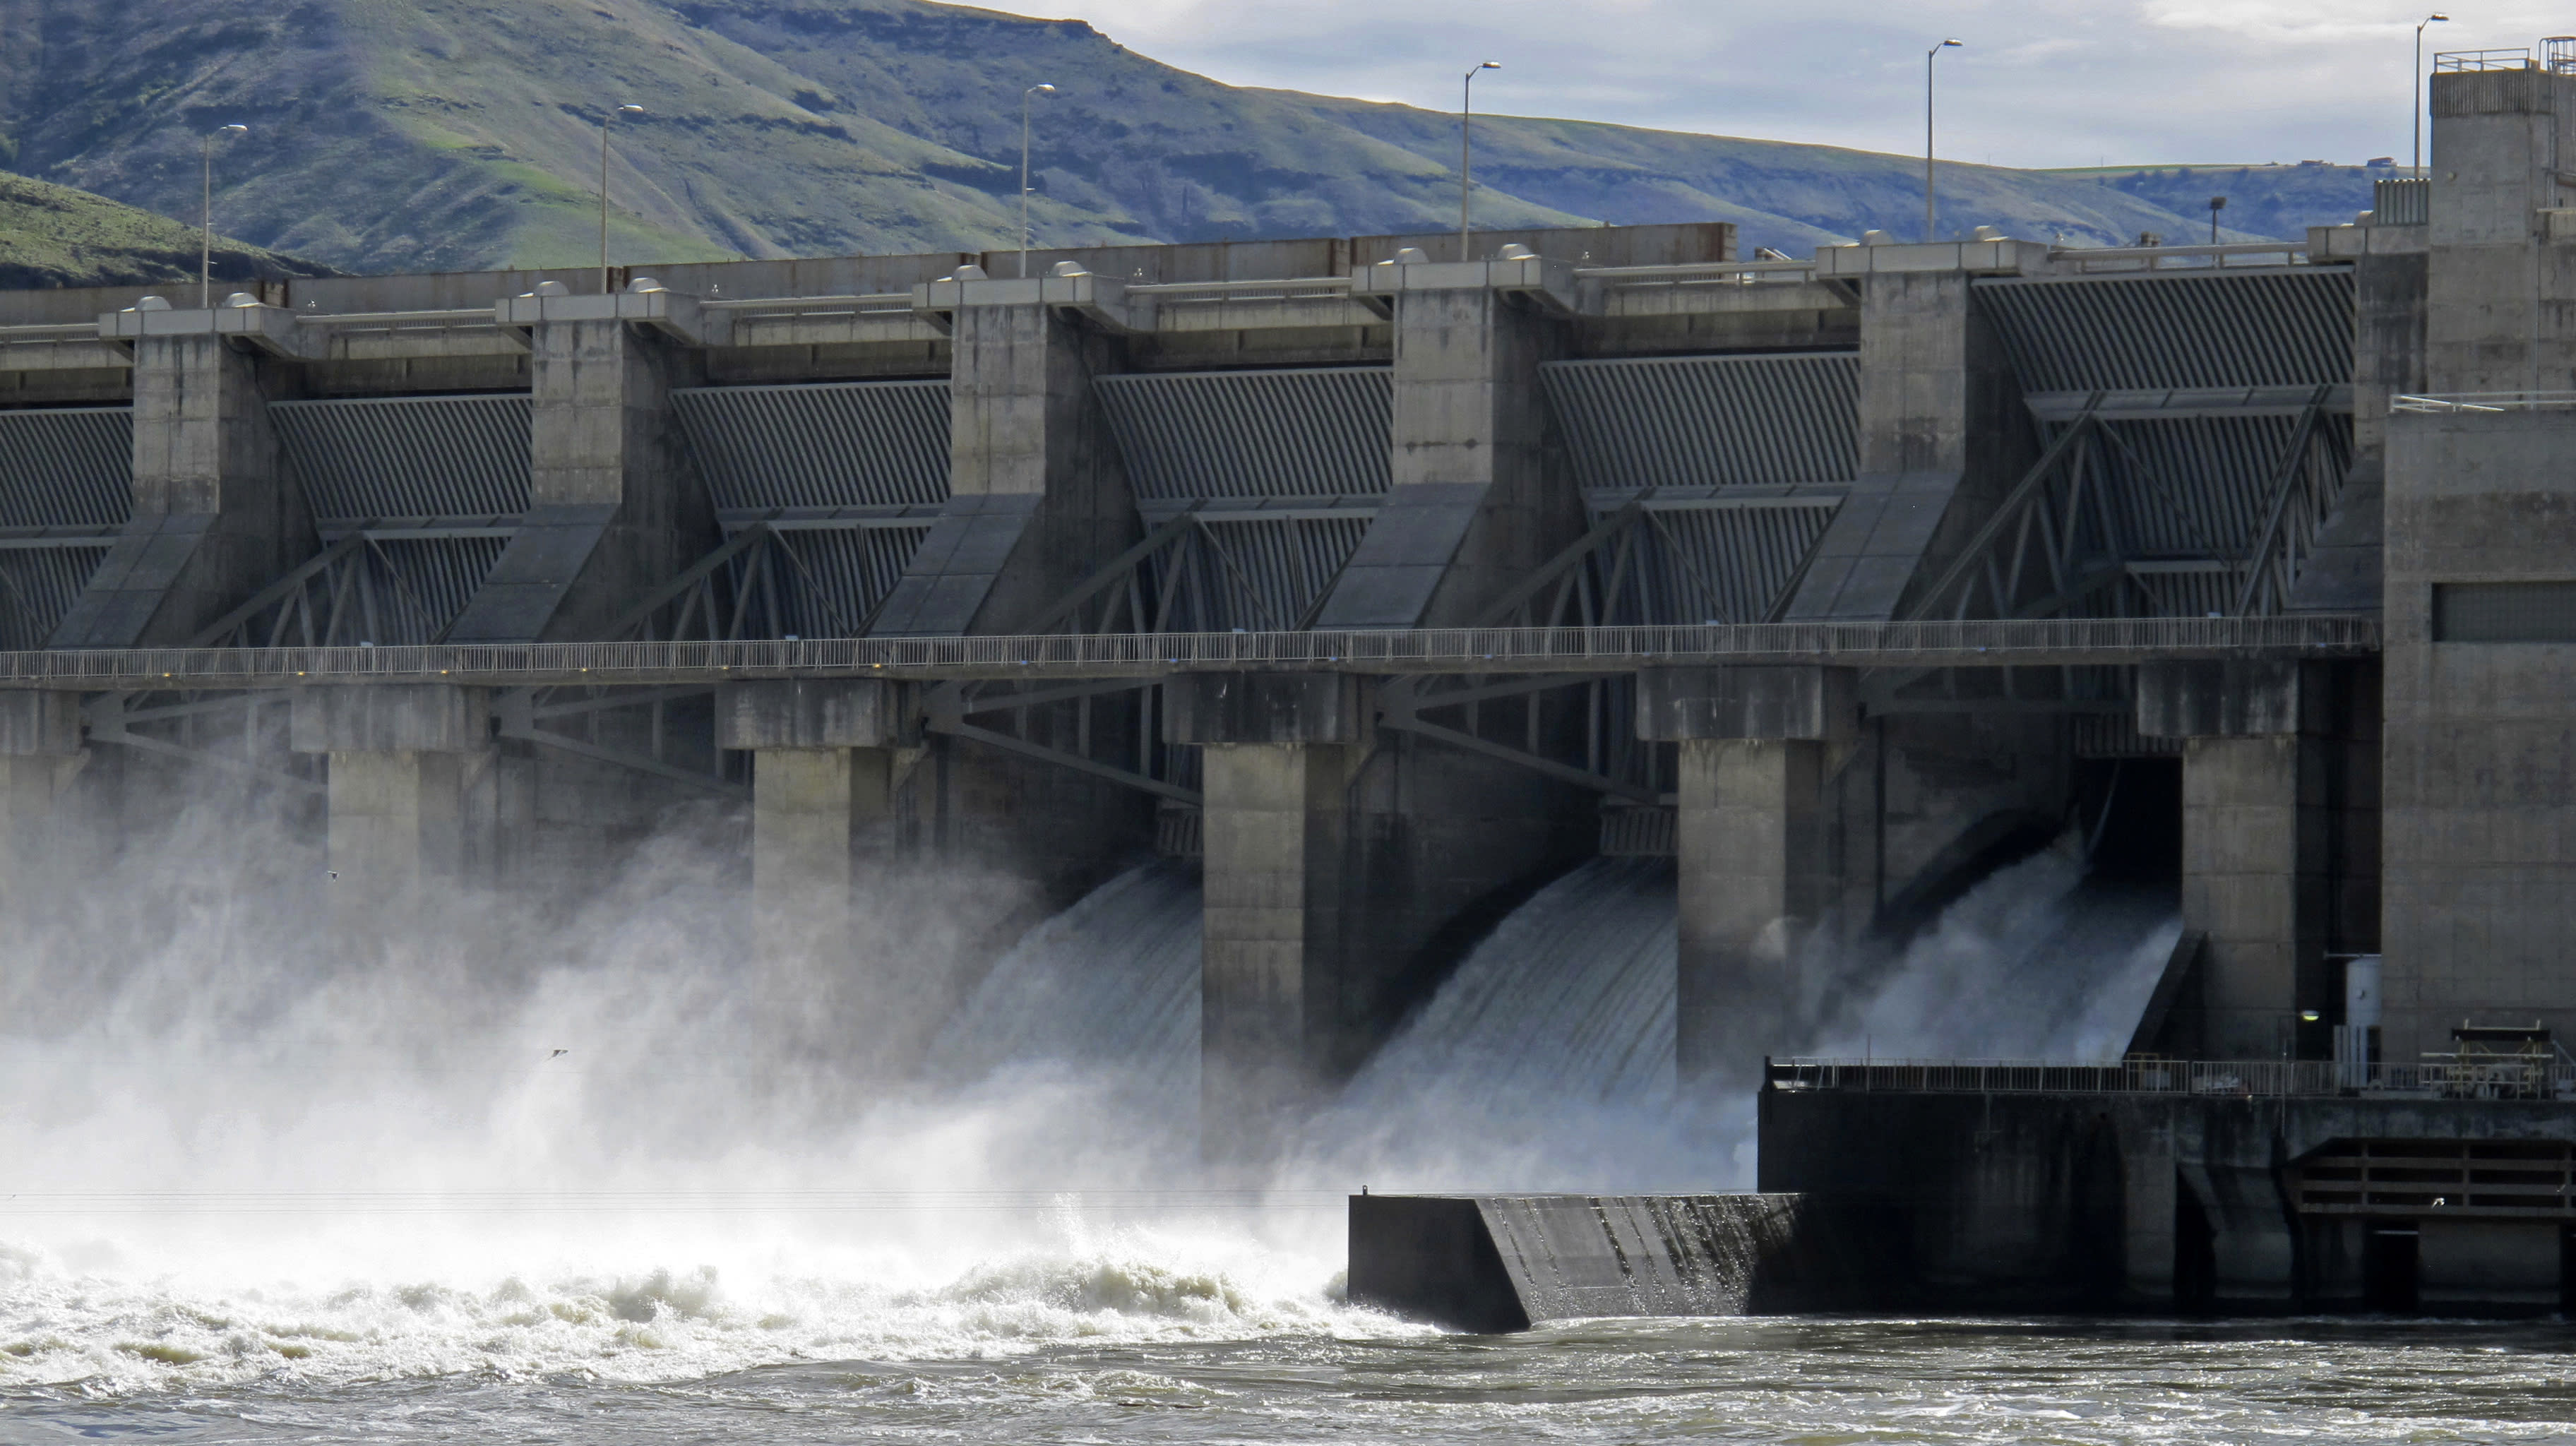 FILE - In this April 11, 2018 file photo, water moves through a spillway of the Lower Granite Dam on the Snake River near Almota, Wash. Farmers, environmentalists, tribal leaders and public utility officials are eagerly awaiting a federal report due Friday, Feb. 28, 2020, that could decide the fate of four hydroelectric dams on the Snake River. (AP Photo/Nicholas K. Geranios,File)